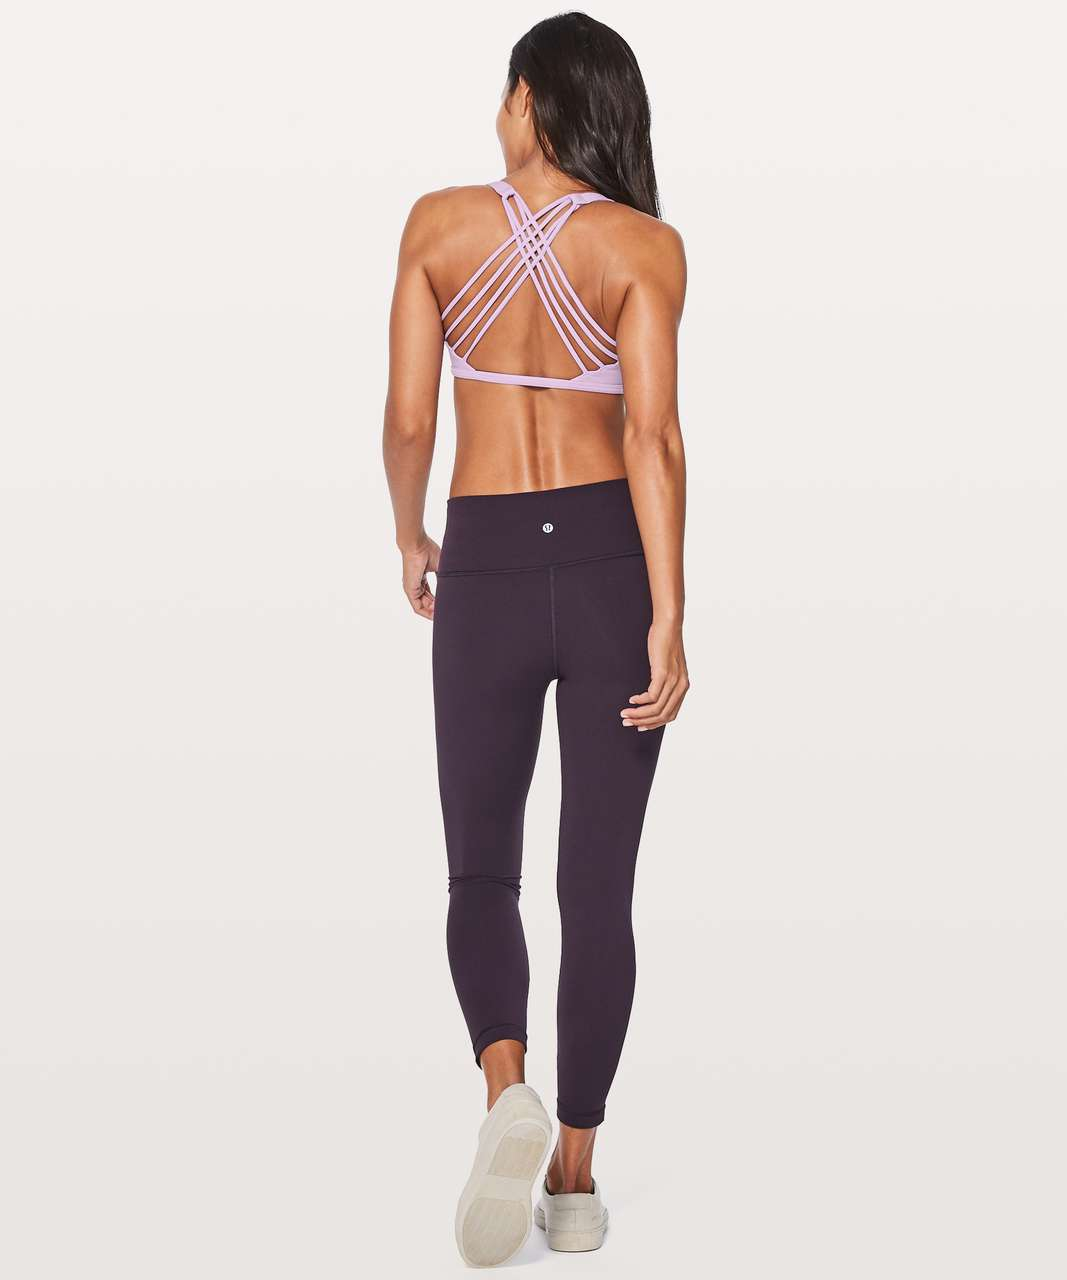 Lululemon Free To Be Bra (Wild) - Lilac Quartz